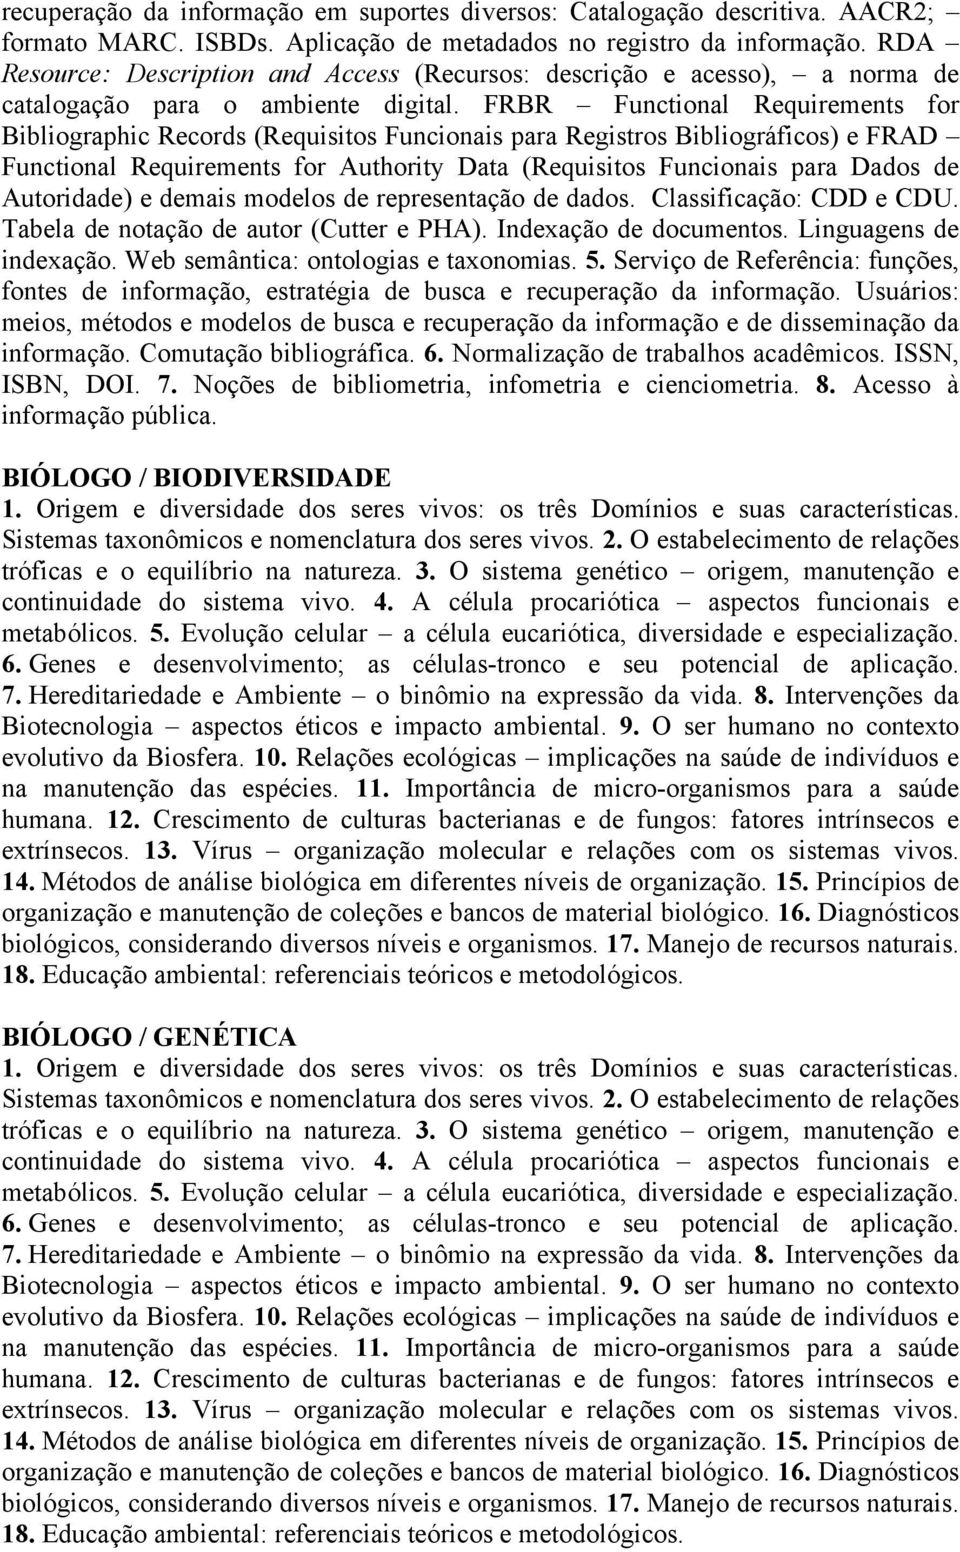 FRBR Functional Requirements for Bibliographic Records (Requisitos Funcionais para Registros Bibliográficos) e FRAD Functional Requirements for Authority Data (Requisitos Funcionais para Dados de